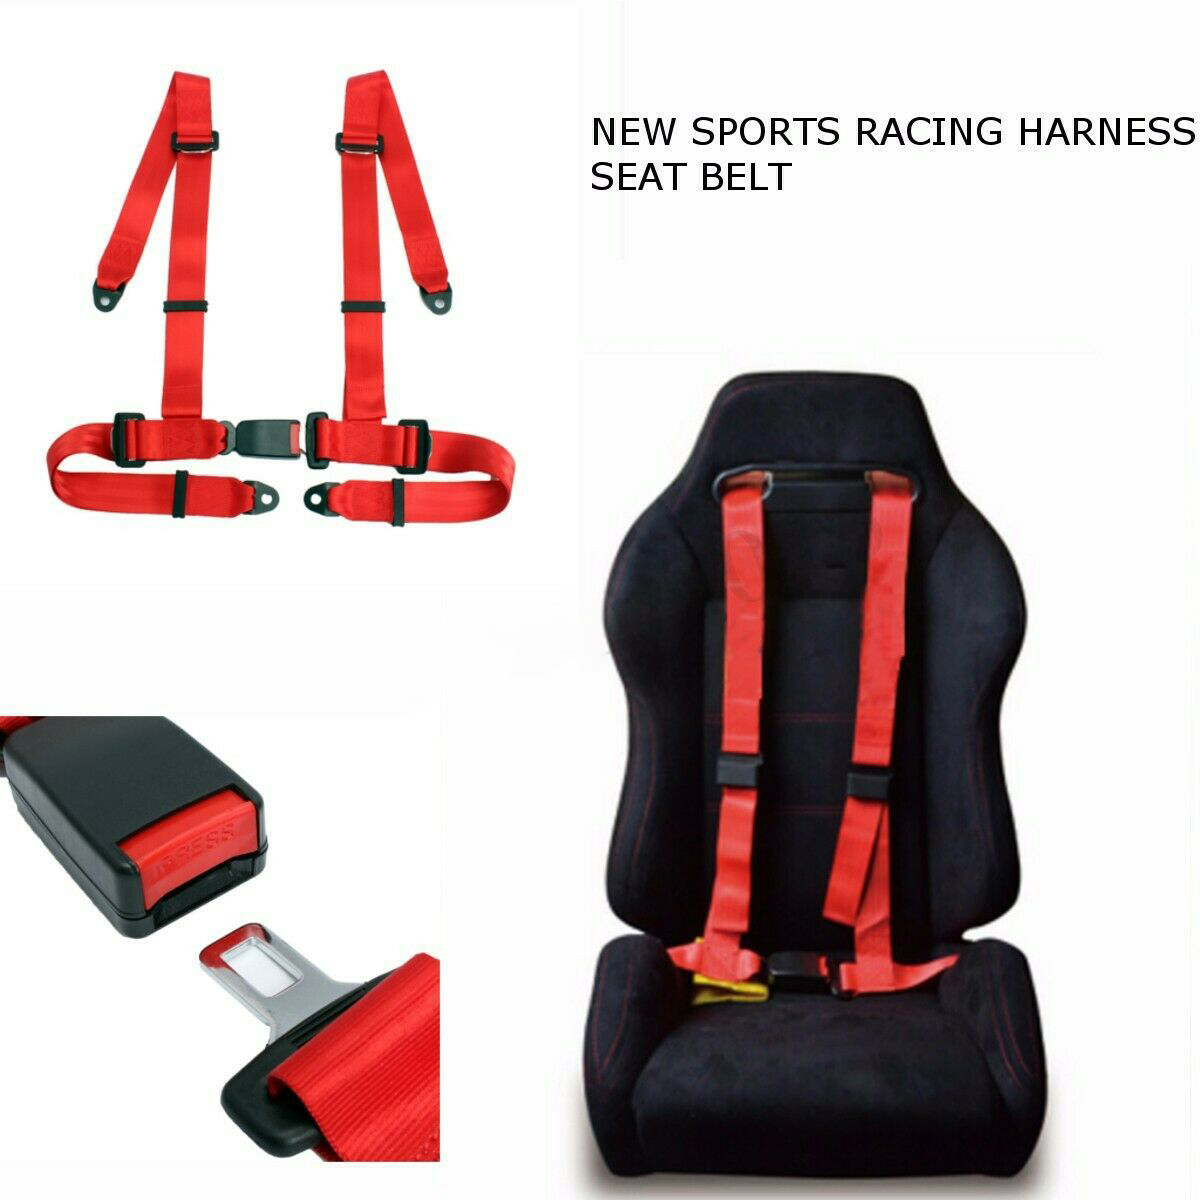 Height 110cm Racing Seat Belt 4-Point Harness Seatbelt Racing Sport Racing Seatbelt 4-Point Racing Seatbelt Durable Interior